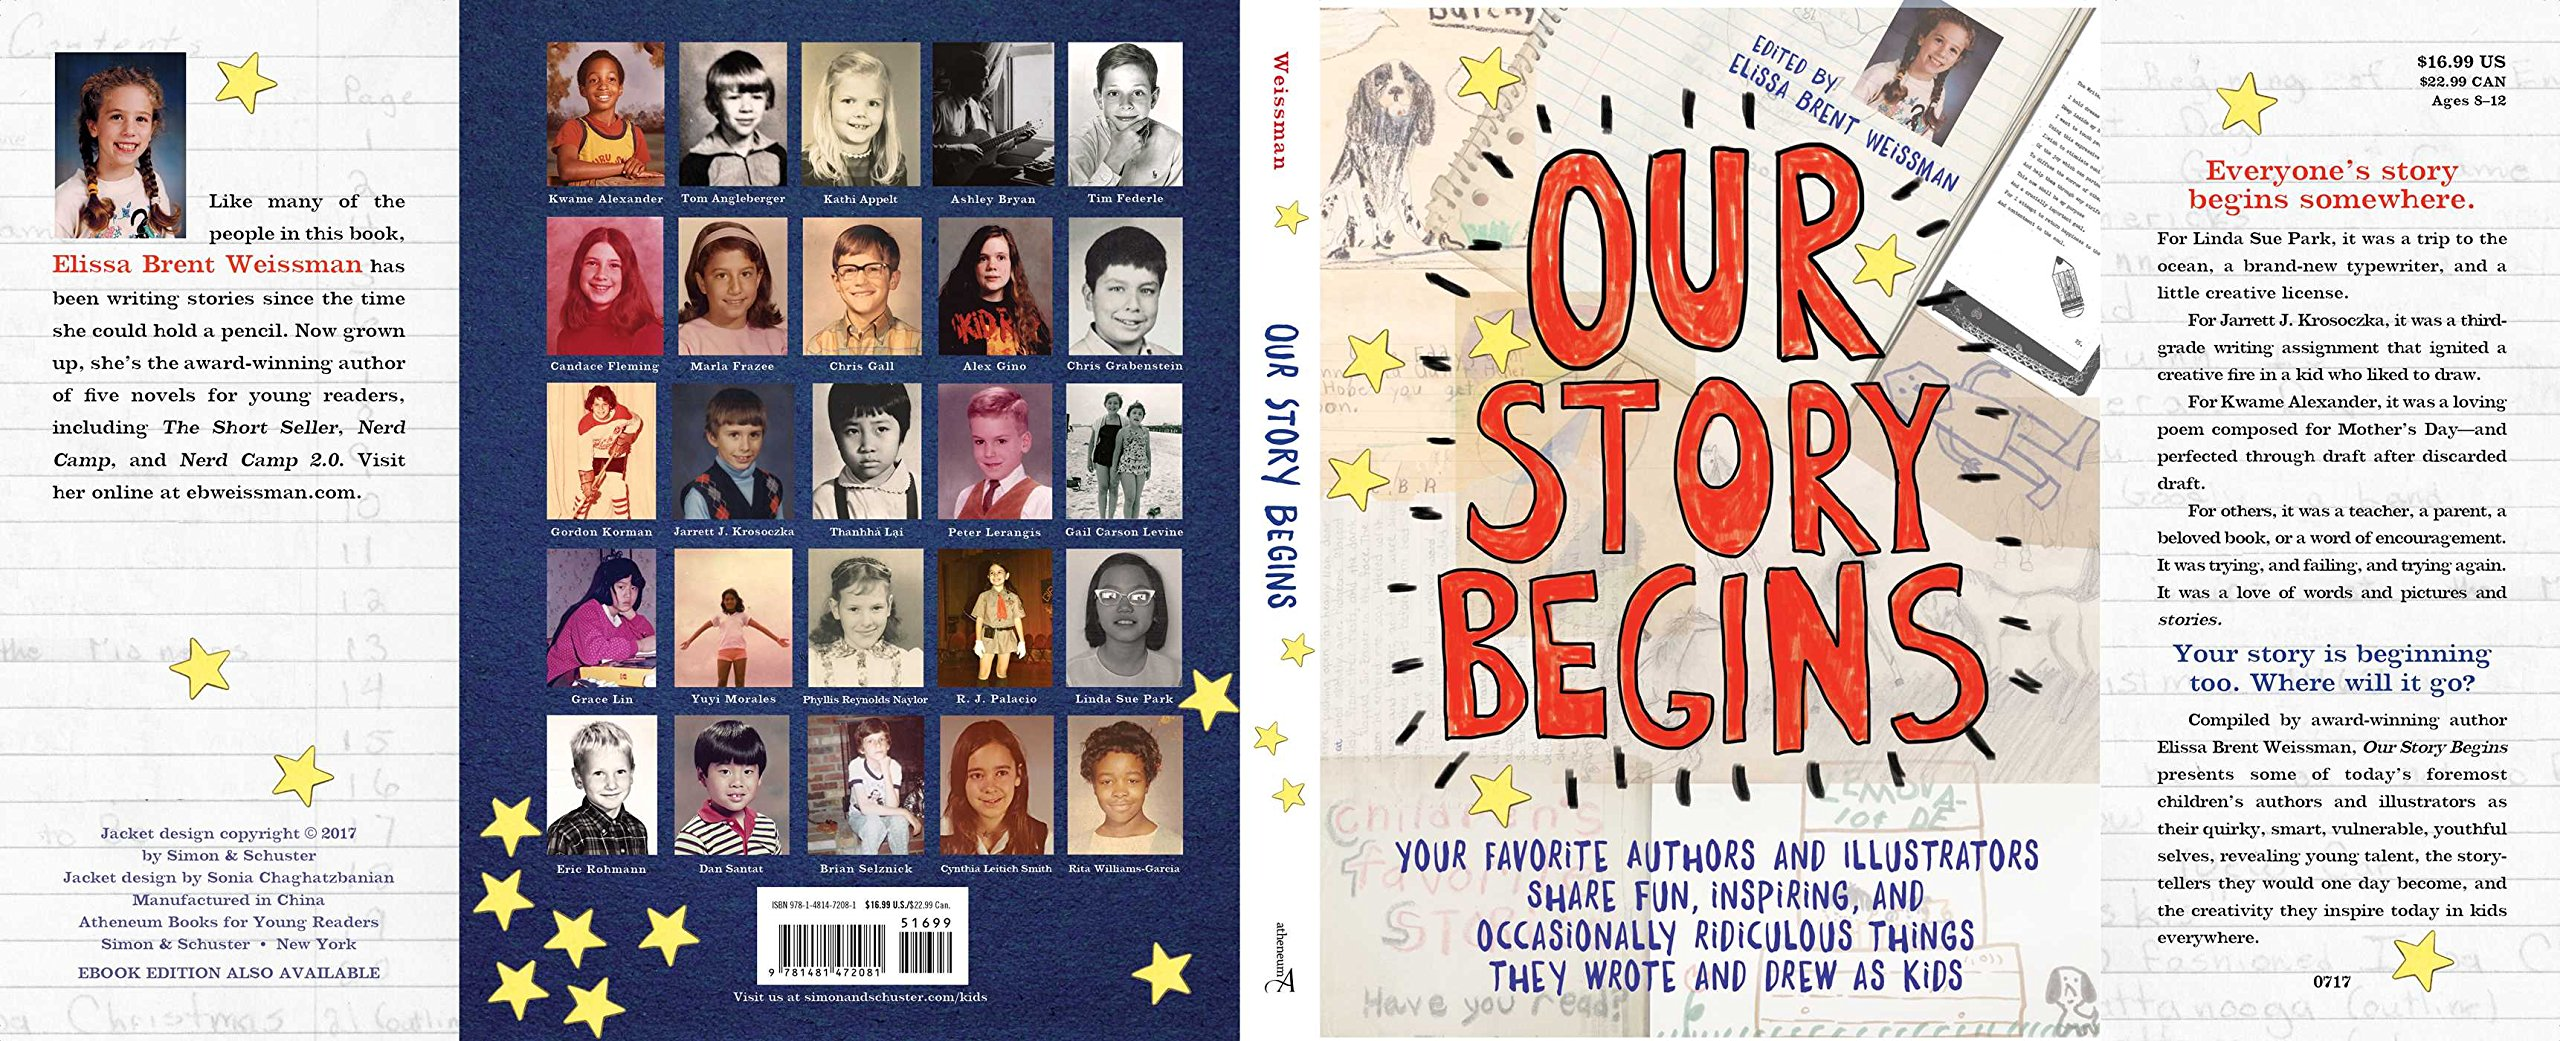 Our Story Begins: Your Favorite Authors And Illustrators Share Fun,  Inspiring, And Occasionally Ridiculous Things They Wrote And Drew As Kids:  Elissa Brent